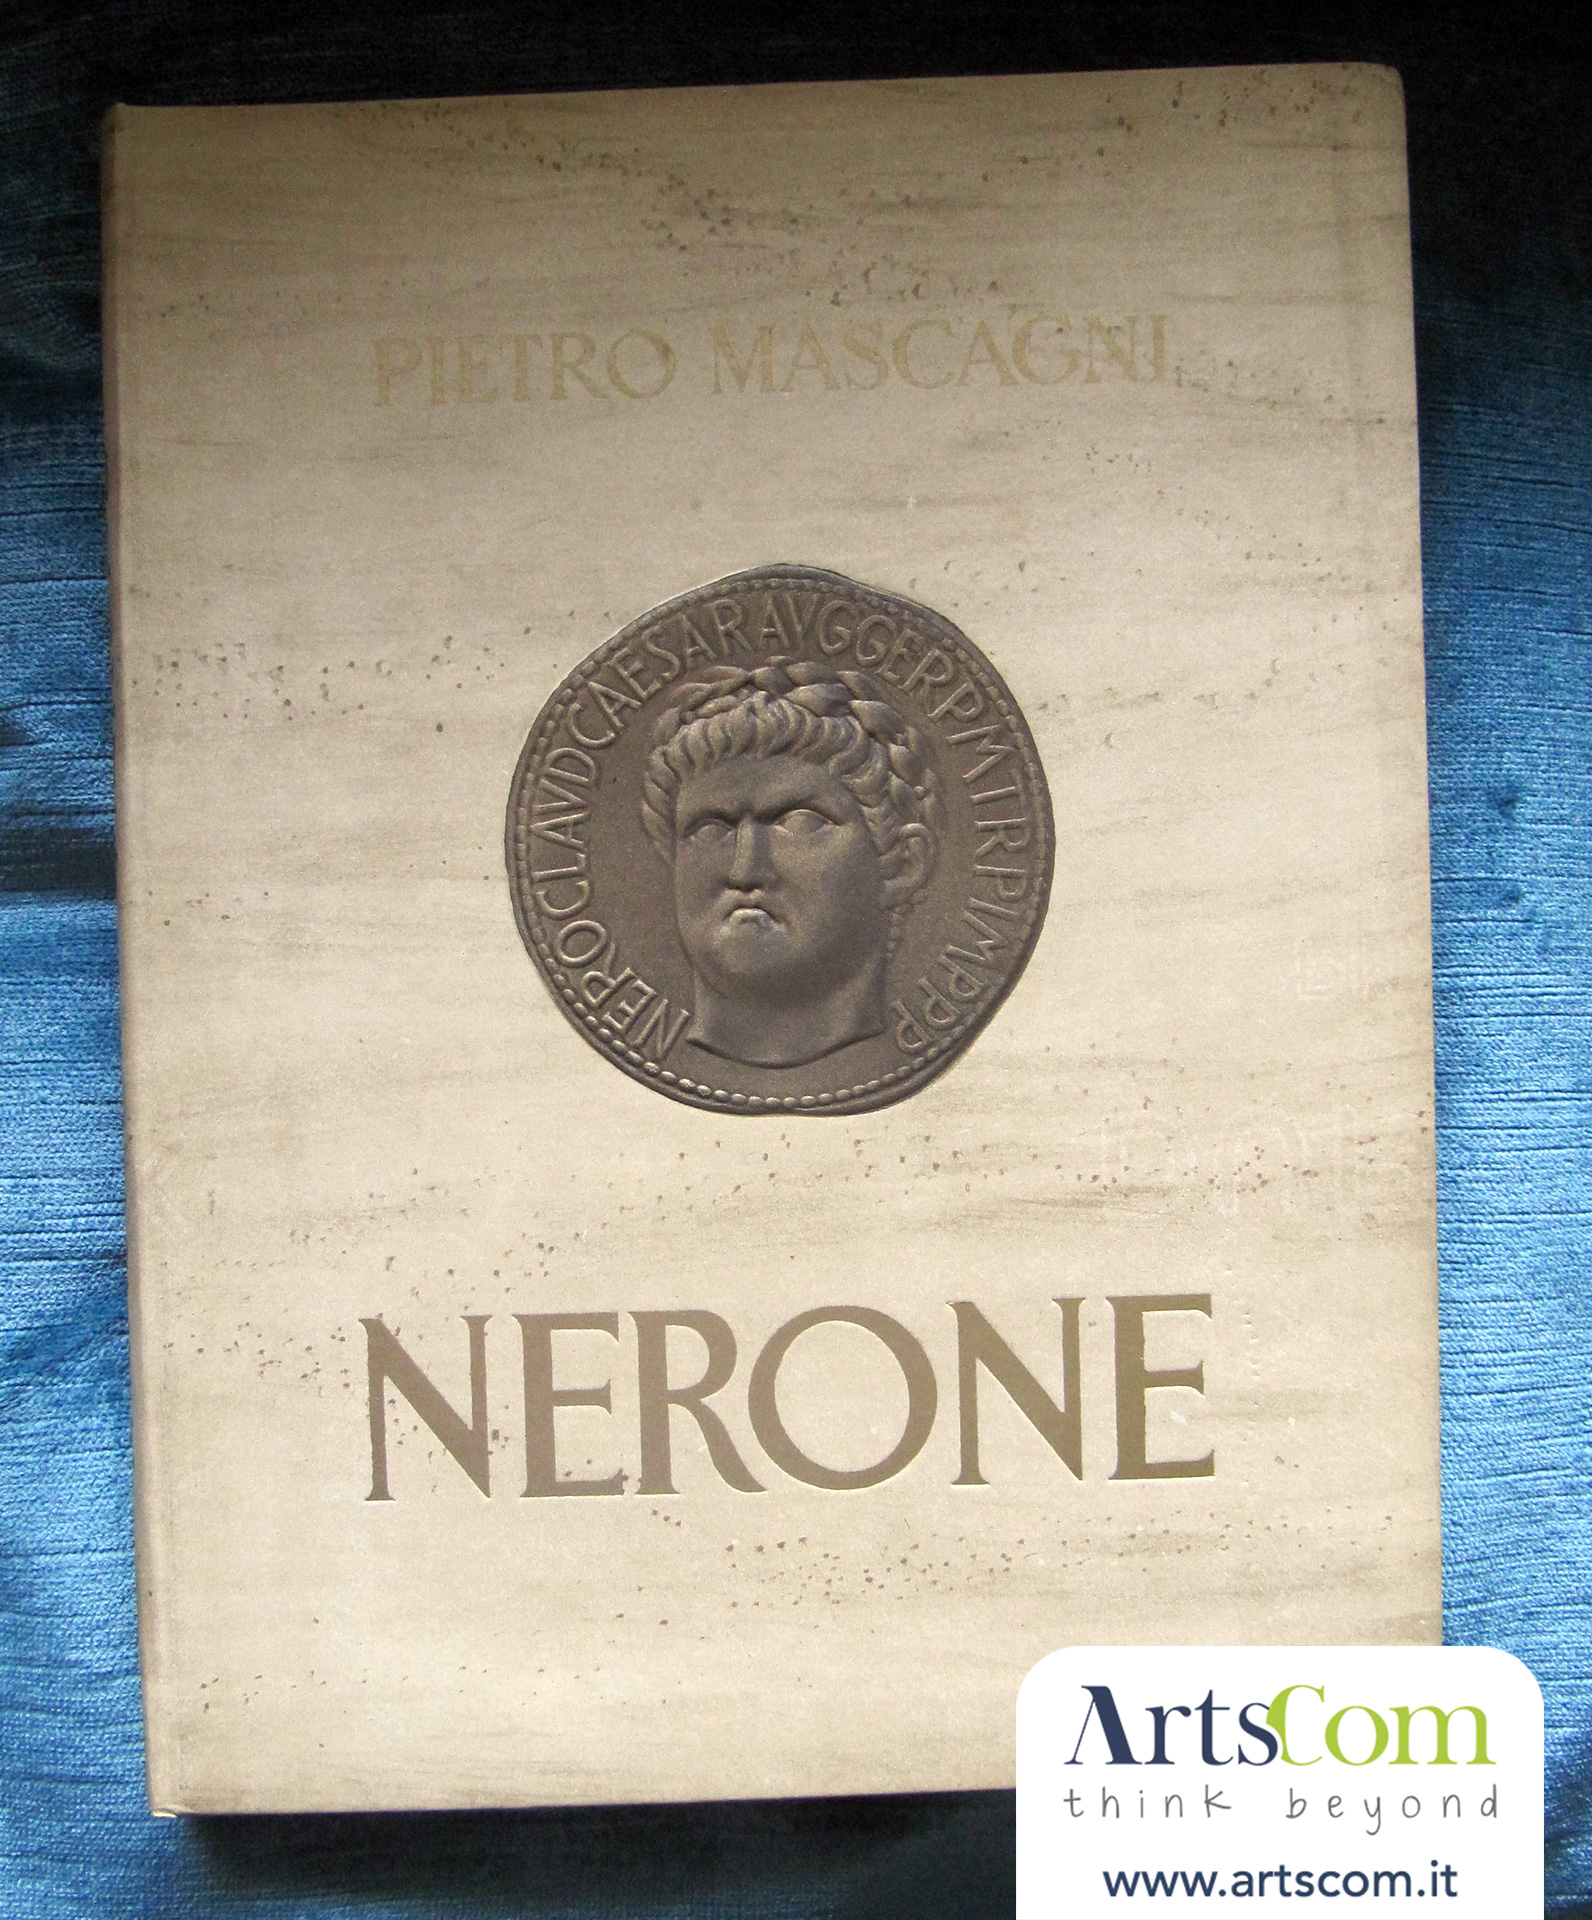 Lo spartito del Nerone copyright © Beatrice Harrach